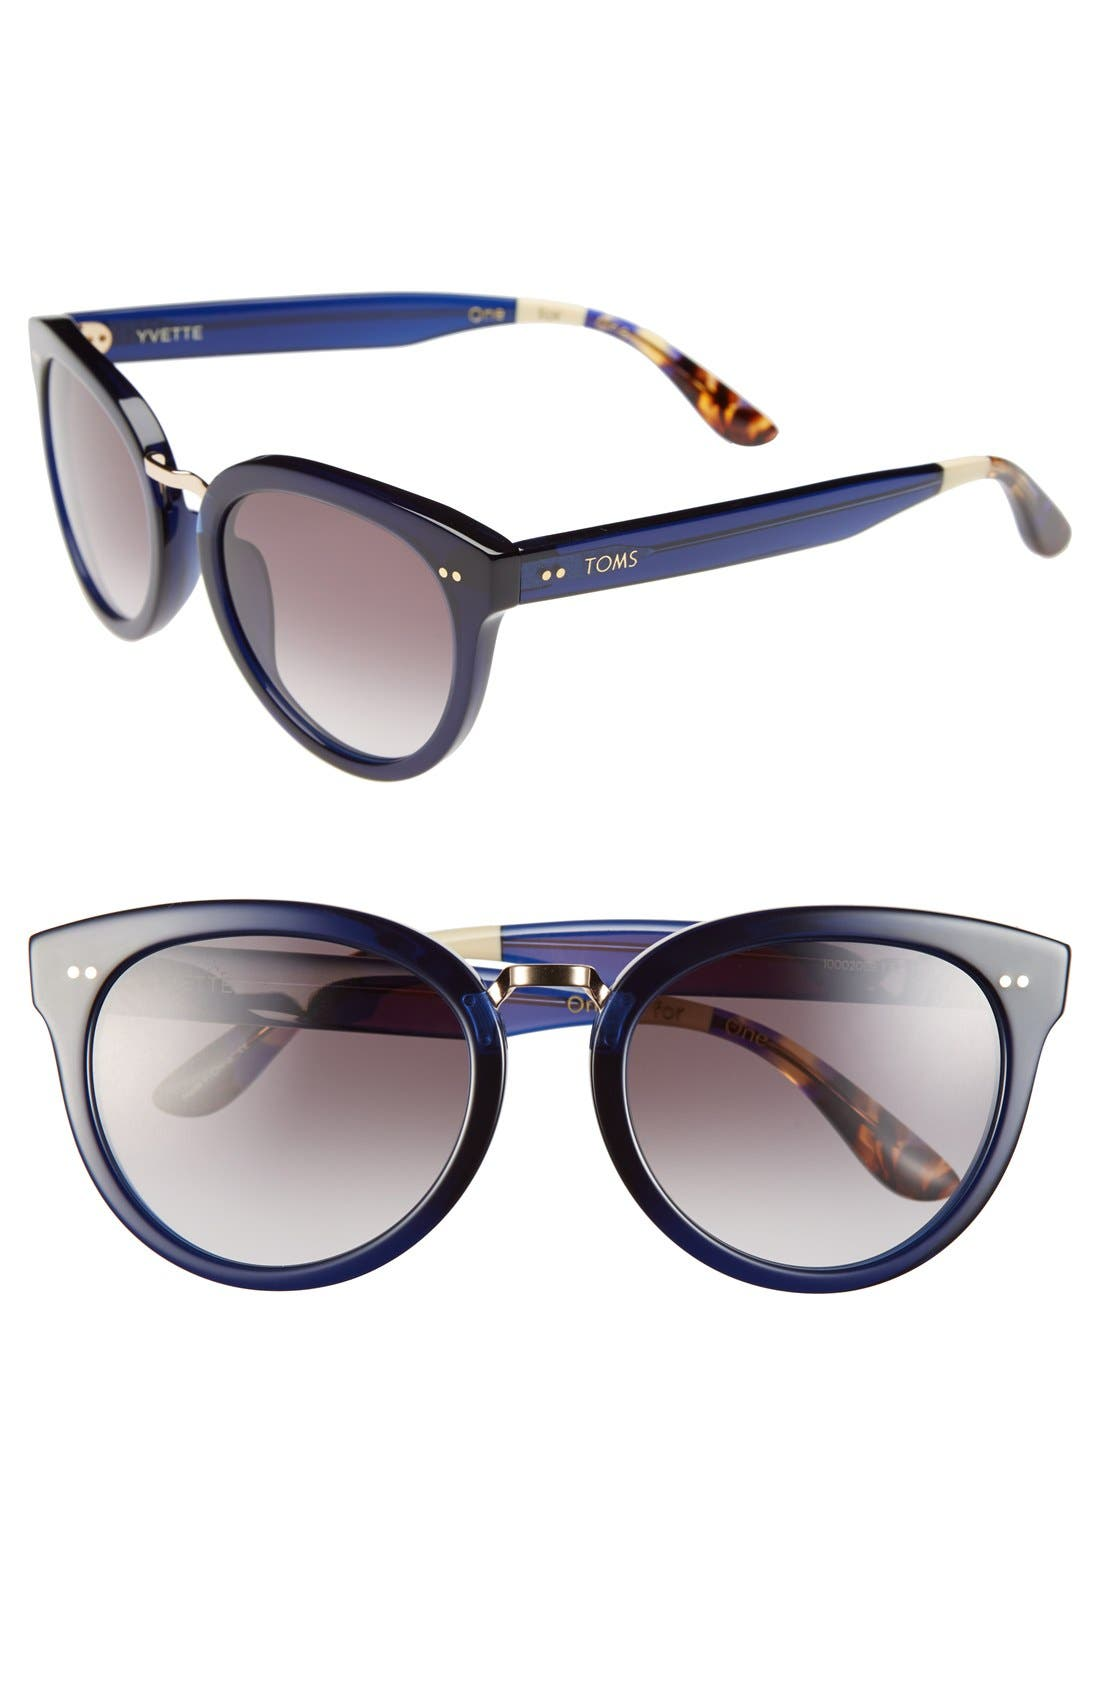 Alternate Image 1 Selected - TOMS 'Yvette' 52mm Sunglasses